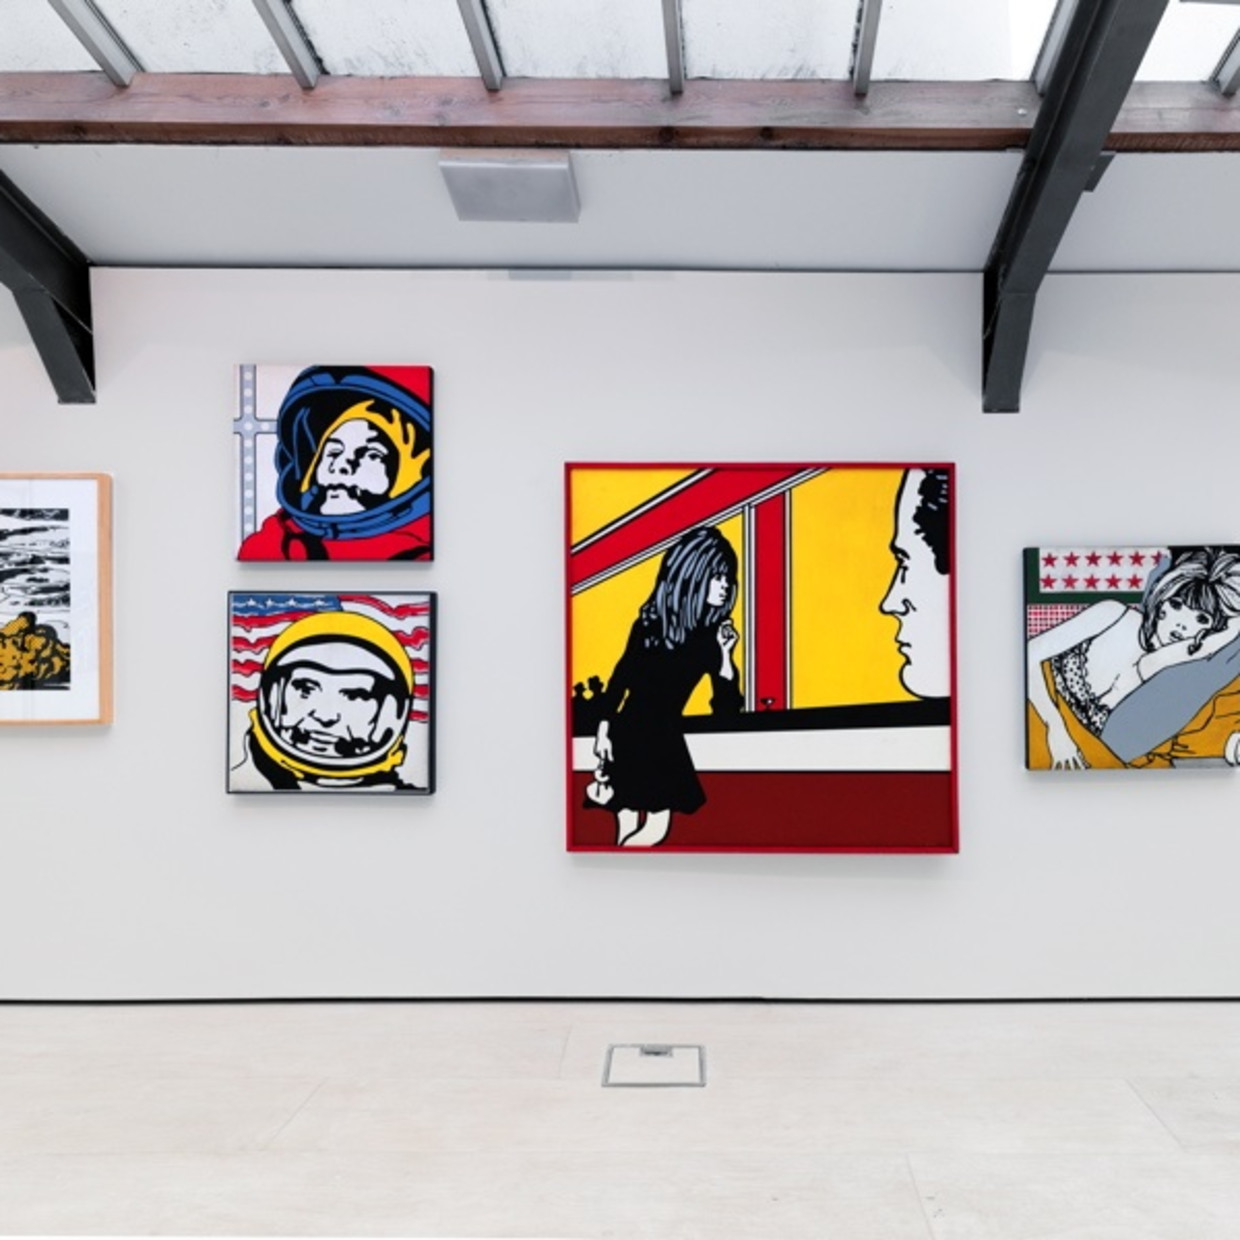 Cecilia Brunson Projects Founded in 2013, Cecilia Brunson Projects (CBP) is a gallery based in Bermondsey, London. The gallery exclusively...